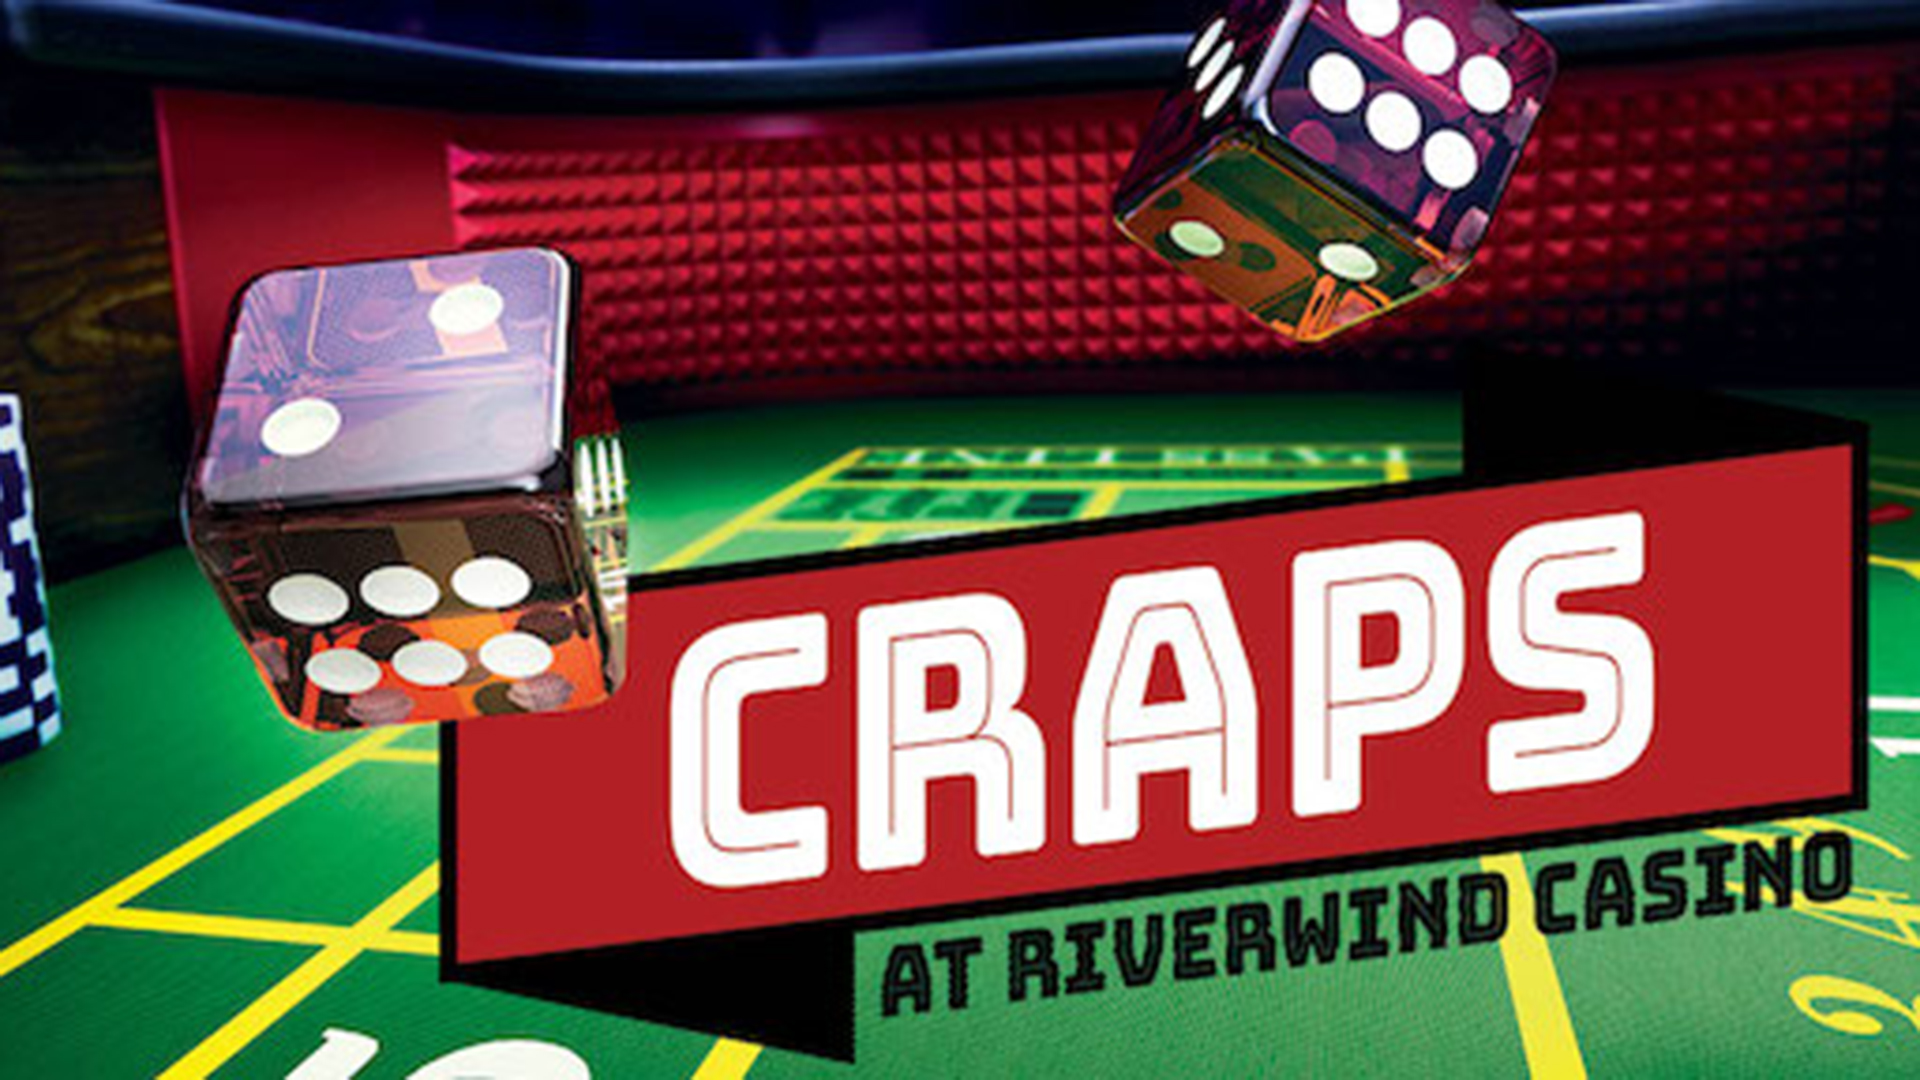 Craps at Riverwind Casino – How to Win